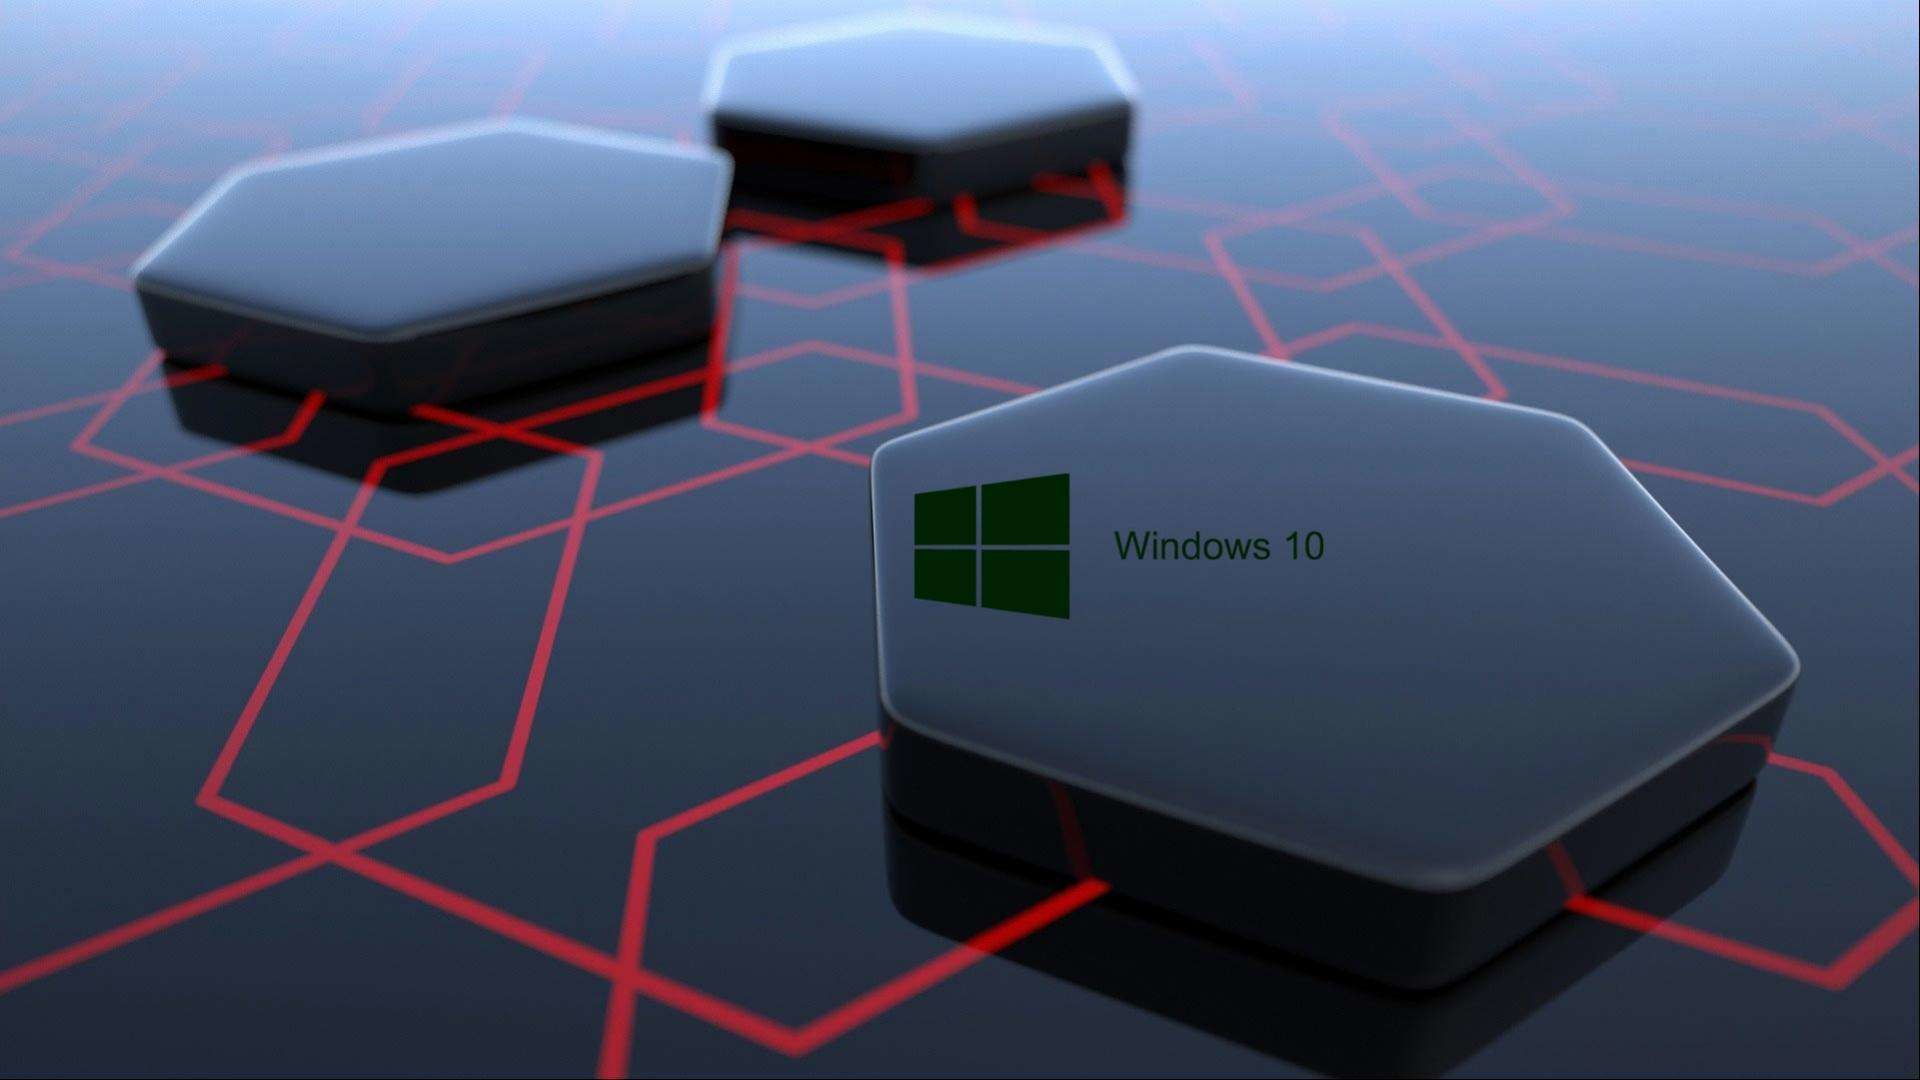 Windows 10 Hd Wallpapers Posted By Ryan Thompson